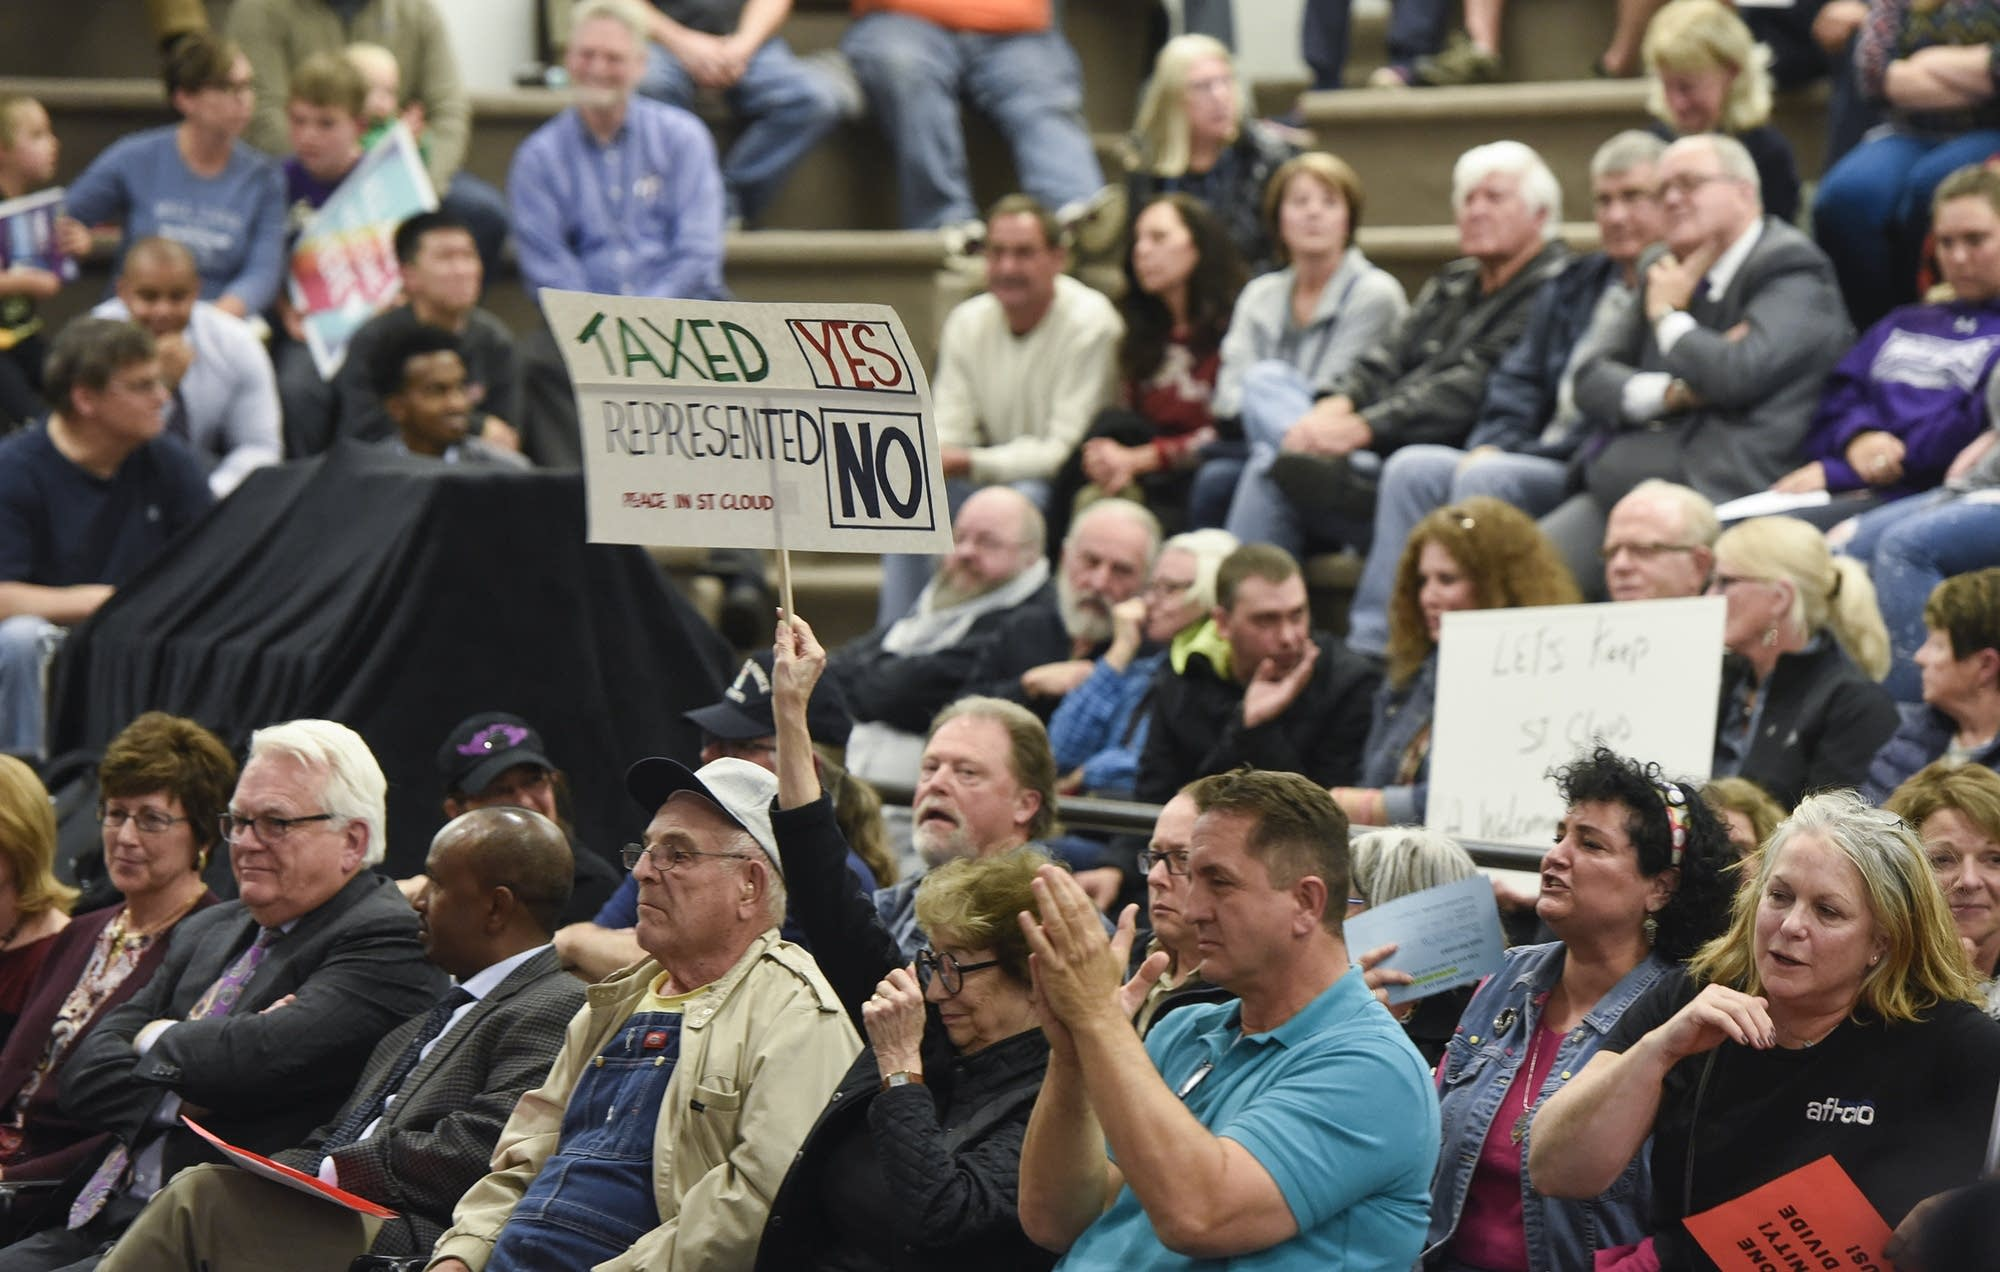 People hold signs during a St. Cloud City Council discussion on refugees.